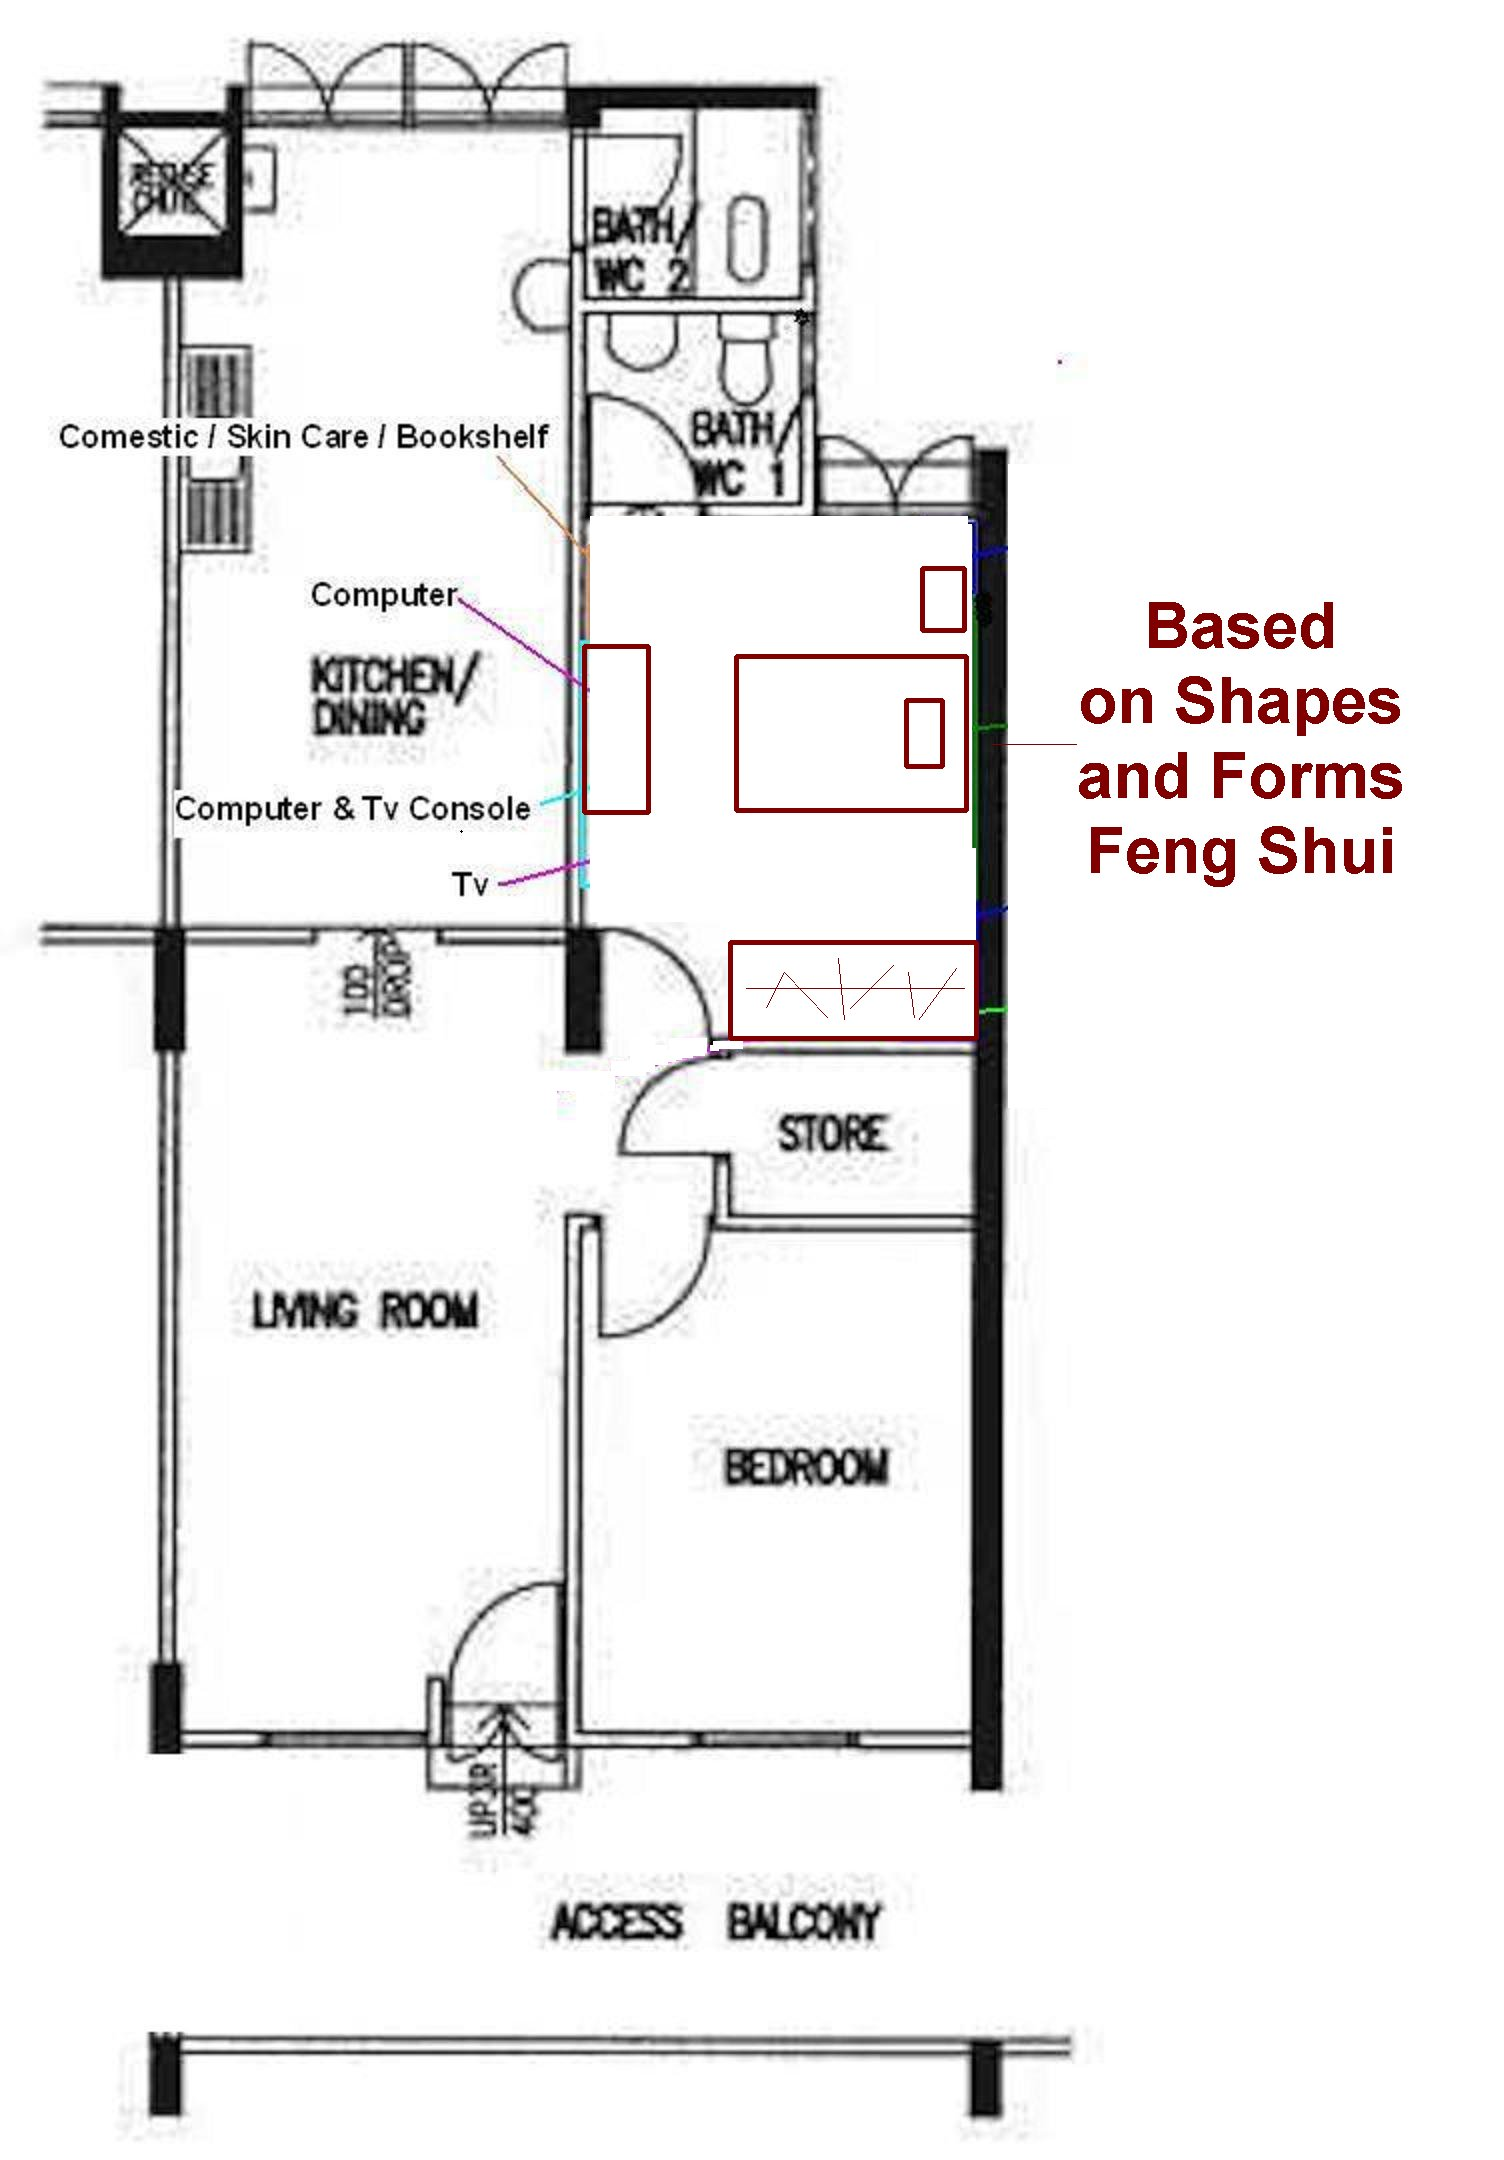 How to feng shui a small bedroom